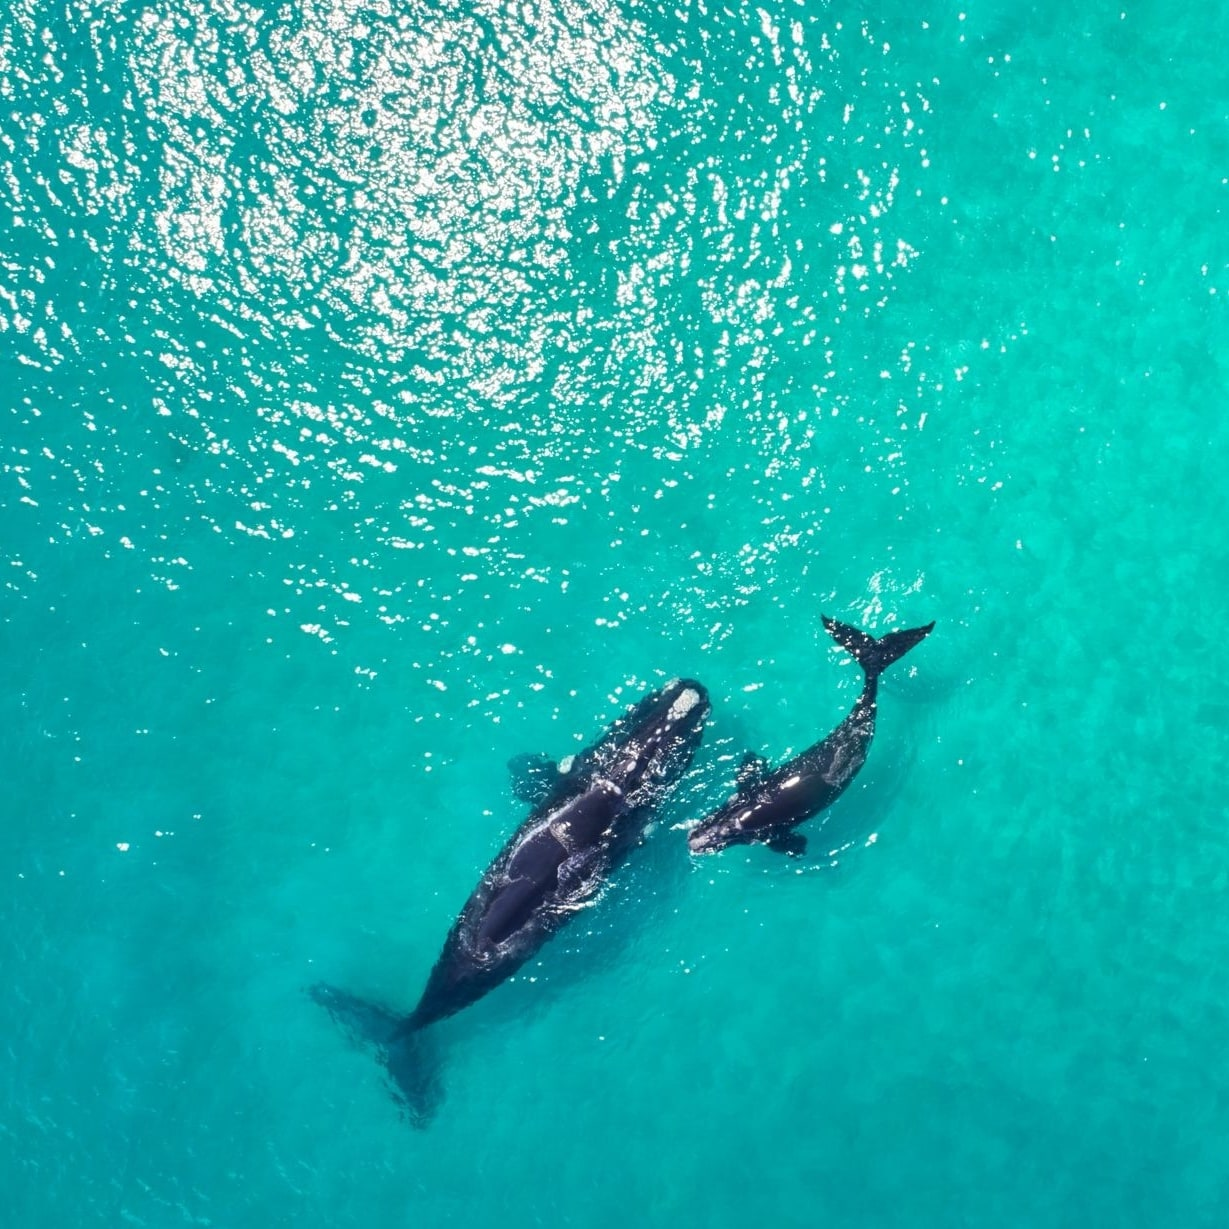 Whales in Yallingup, Western Australia © Australia's South West